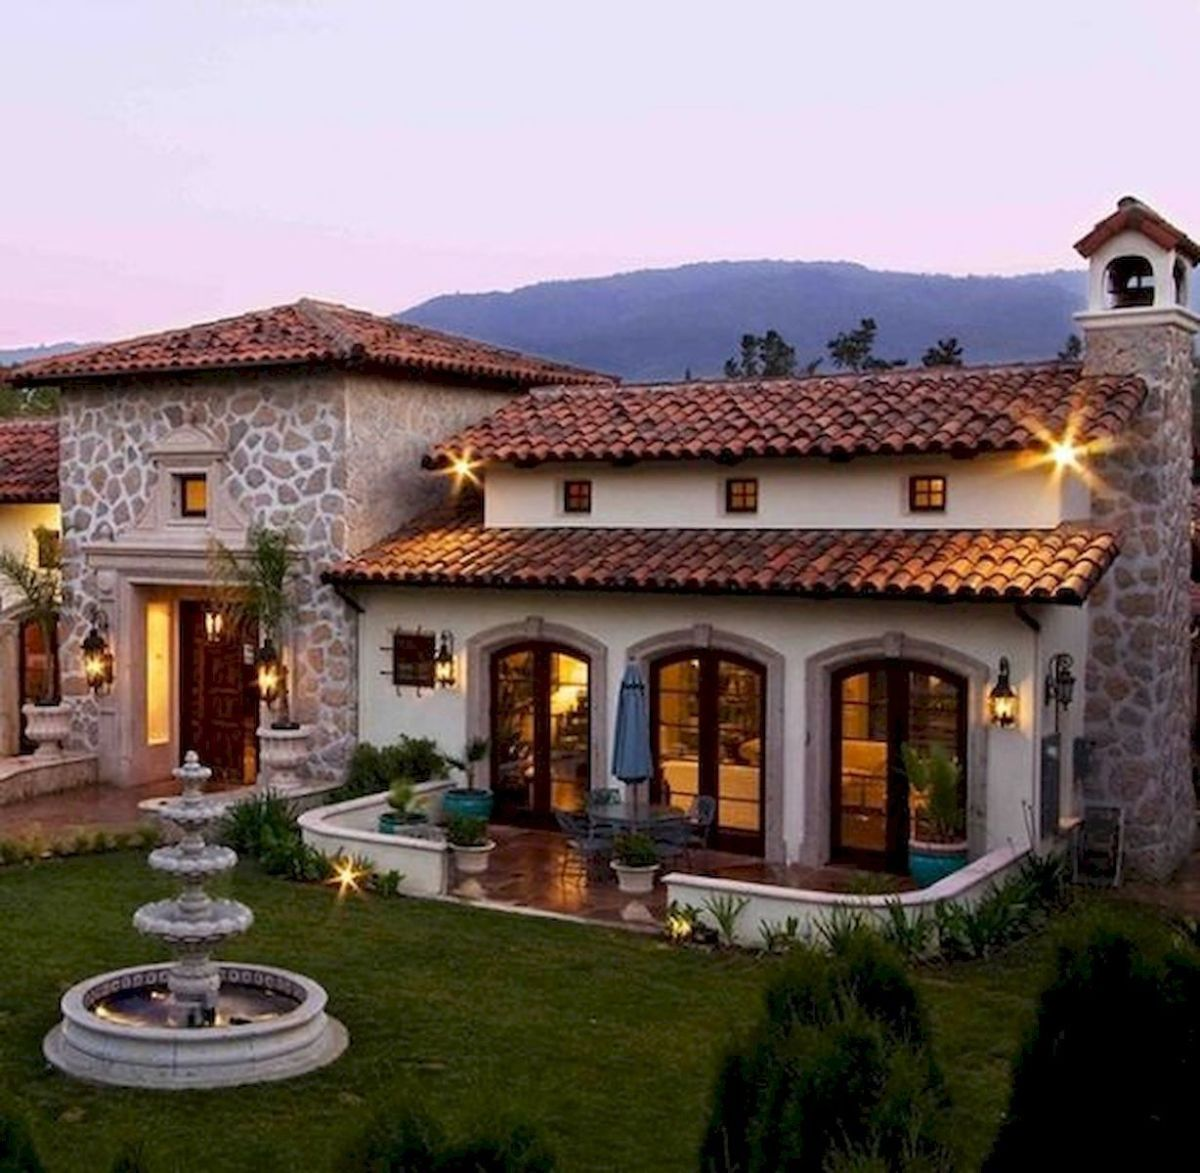 70 Most Popular Dream House Exterior Design Ideas (1